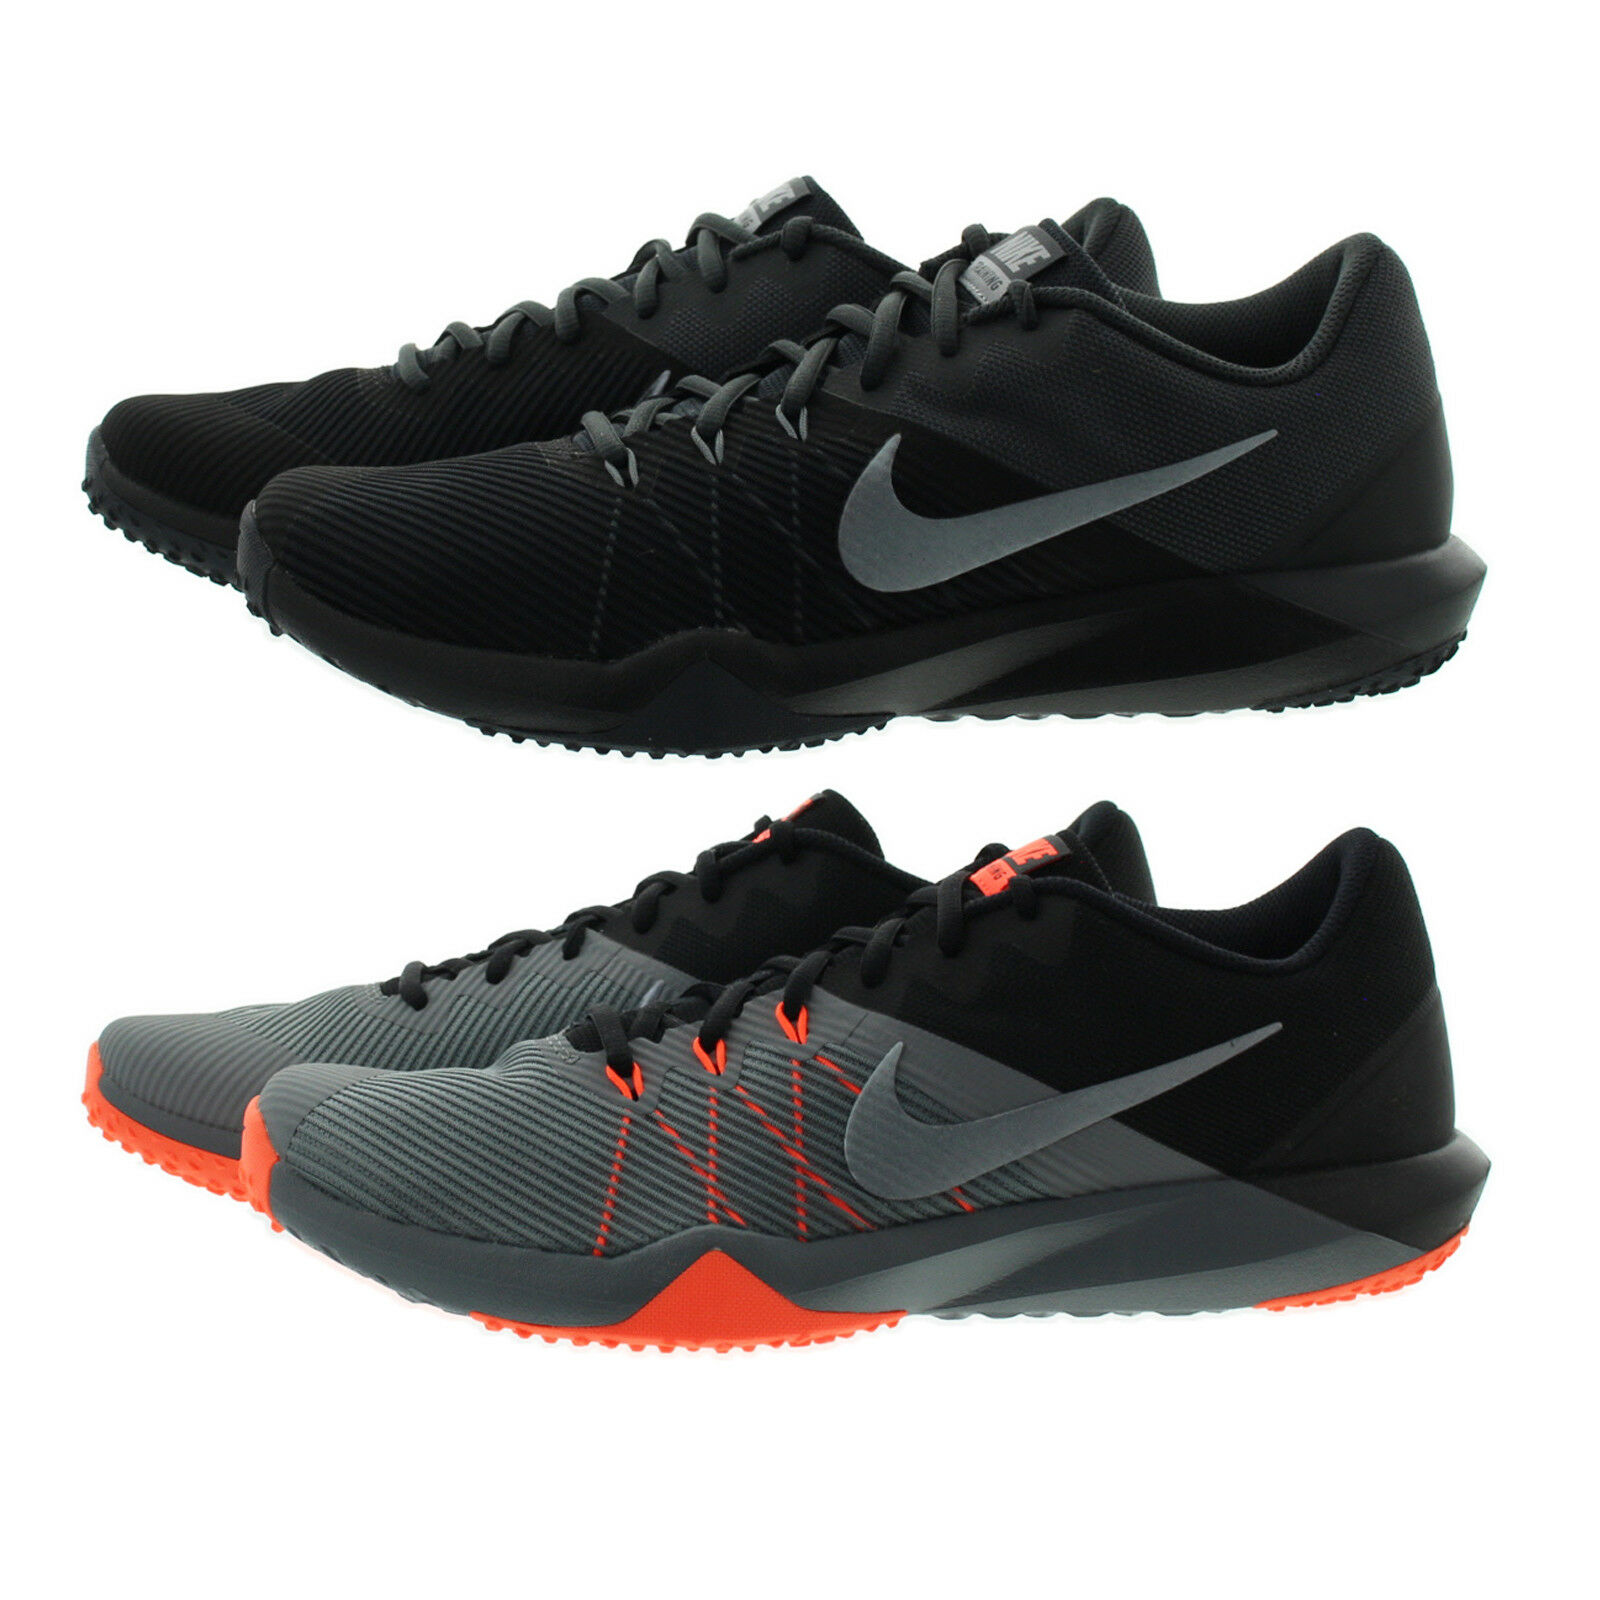 Nike 917707 Mens Retaliation TR Lightweight Mesh Training Running shoes Sneakers